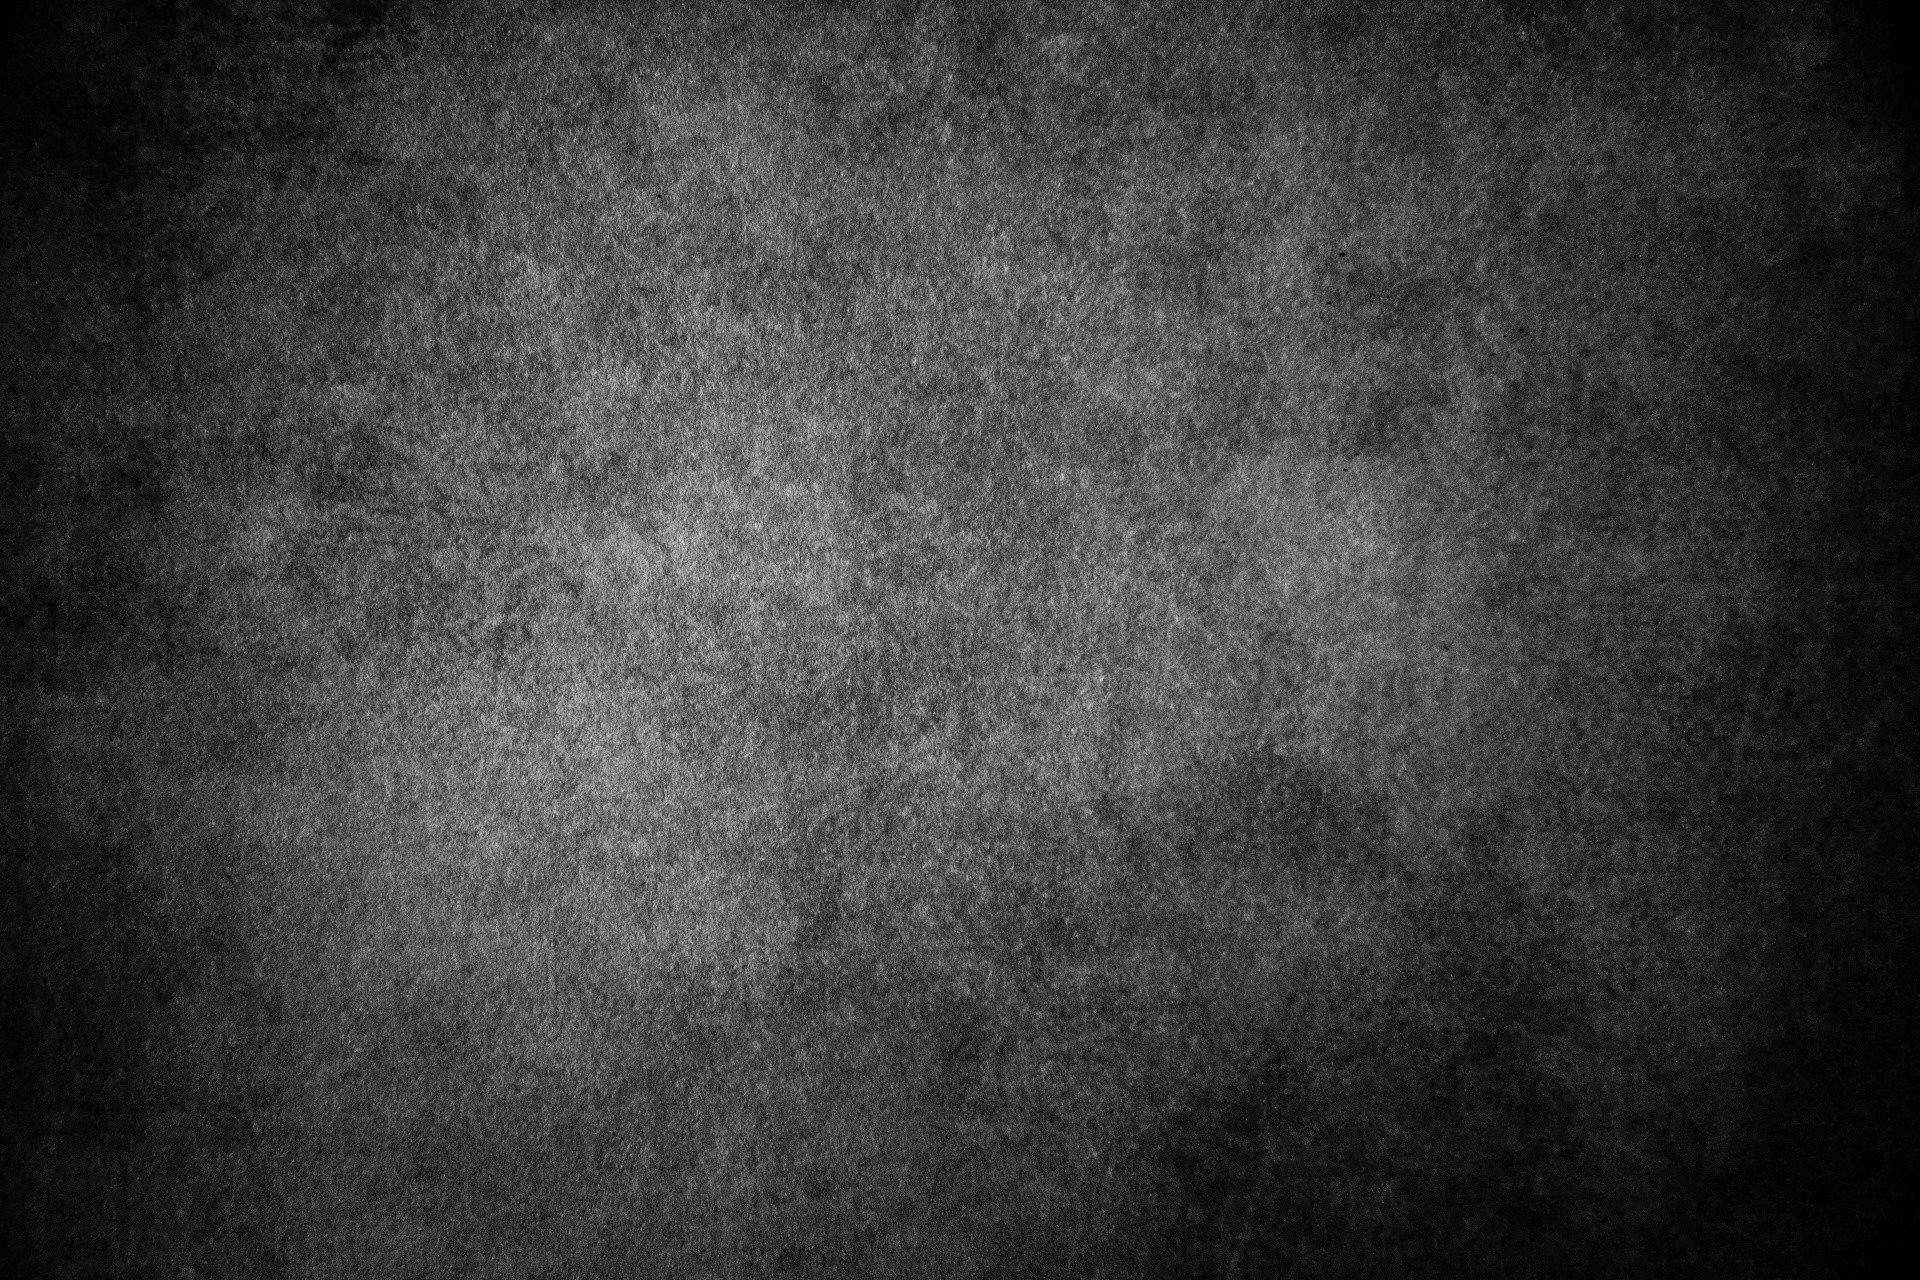 Black Metal Backgrounds 51 images 1920x1280